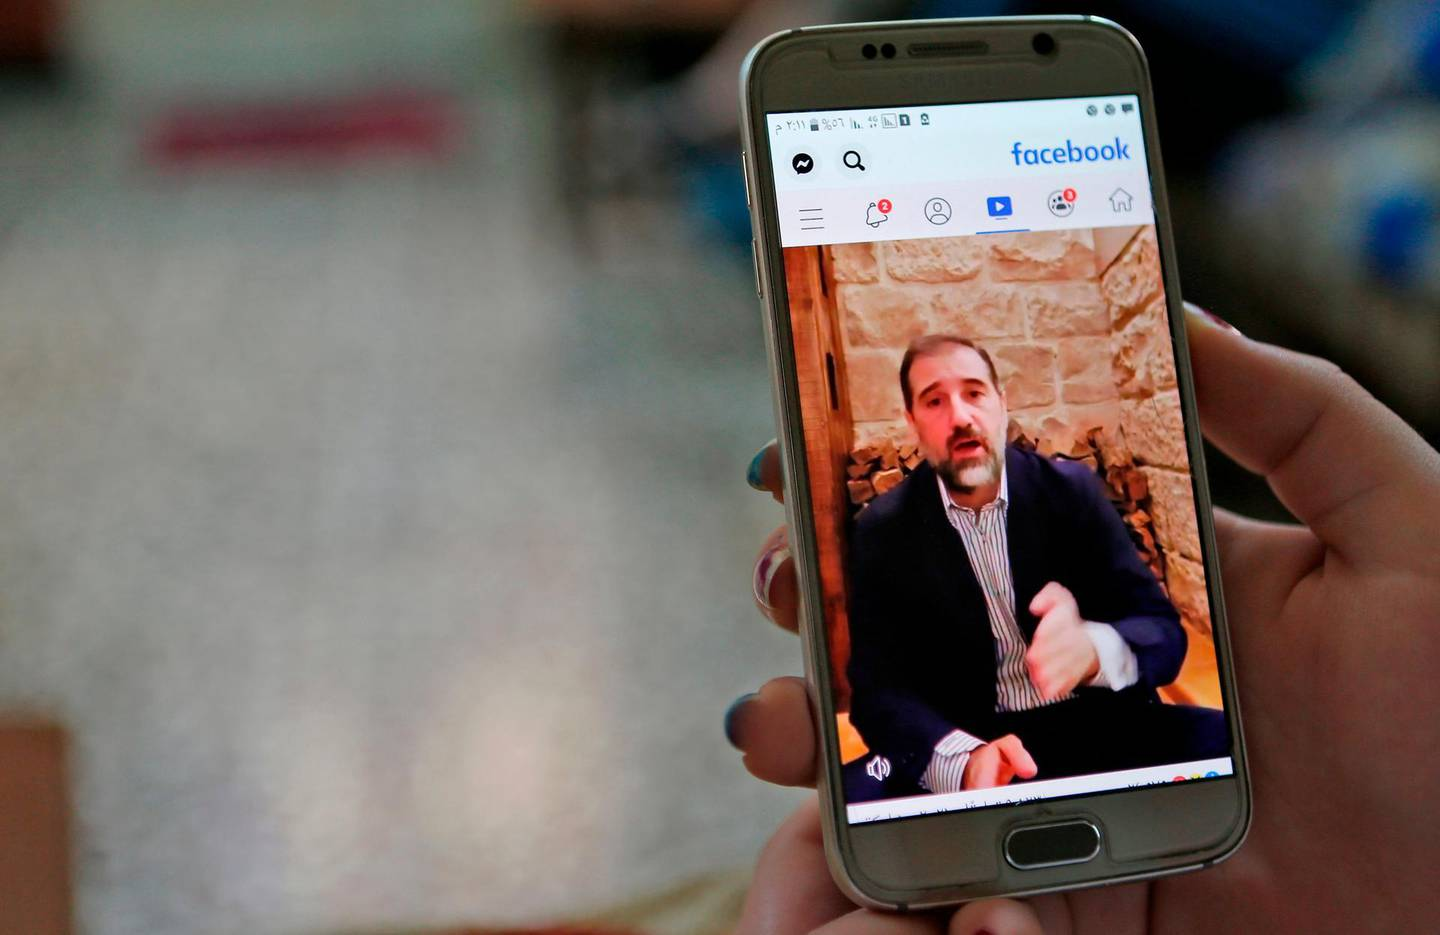 A woman watches the Facebook video of Syrian businessman Rami Makhlouf on her mobile in Syria's capital Damascus, on May 11, 2020. Syria's top tycoon publicly airing his grievances has revealed a power struggle within the ruling family as it tries to cement its power after nine years of war, analysts say. After years of staying out of the limelight, business magnate Rami Makhlouf this month in two videos on Facebook laid bare his struggles with the regime headed by his first cousin President Bashar al-Assad, in what analysts say is a desperate last stand. / AFP / -